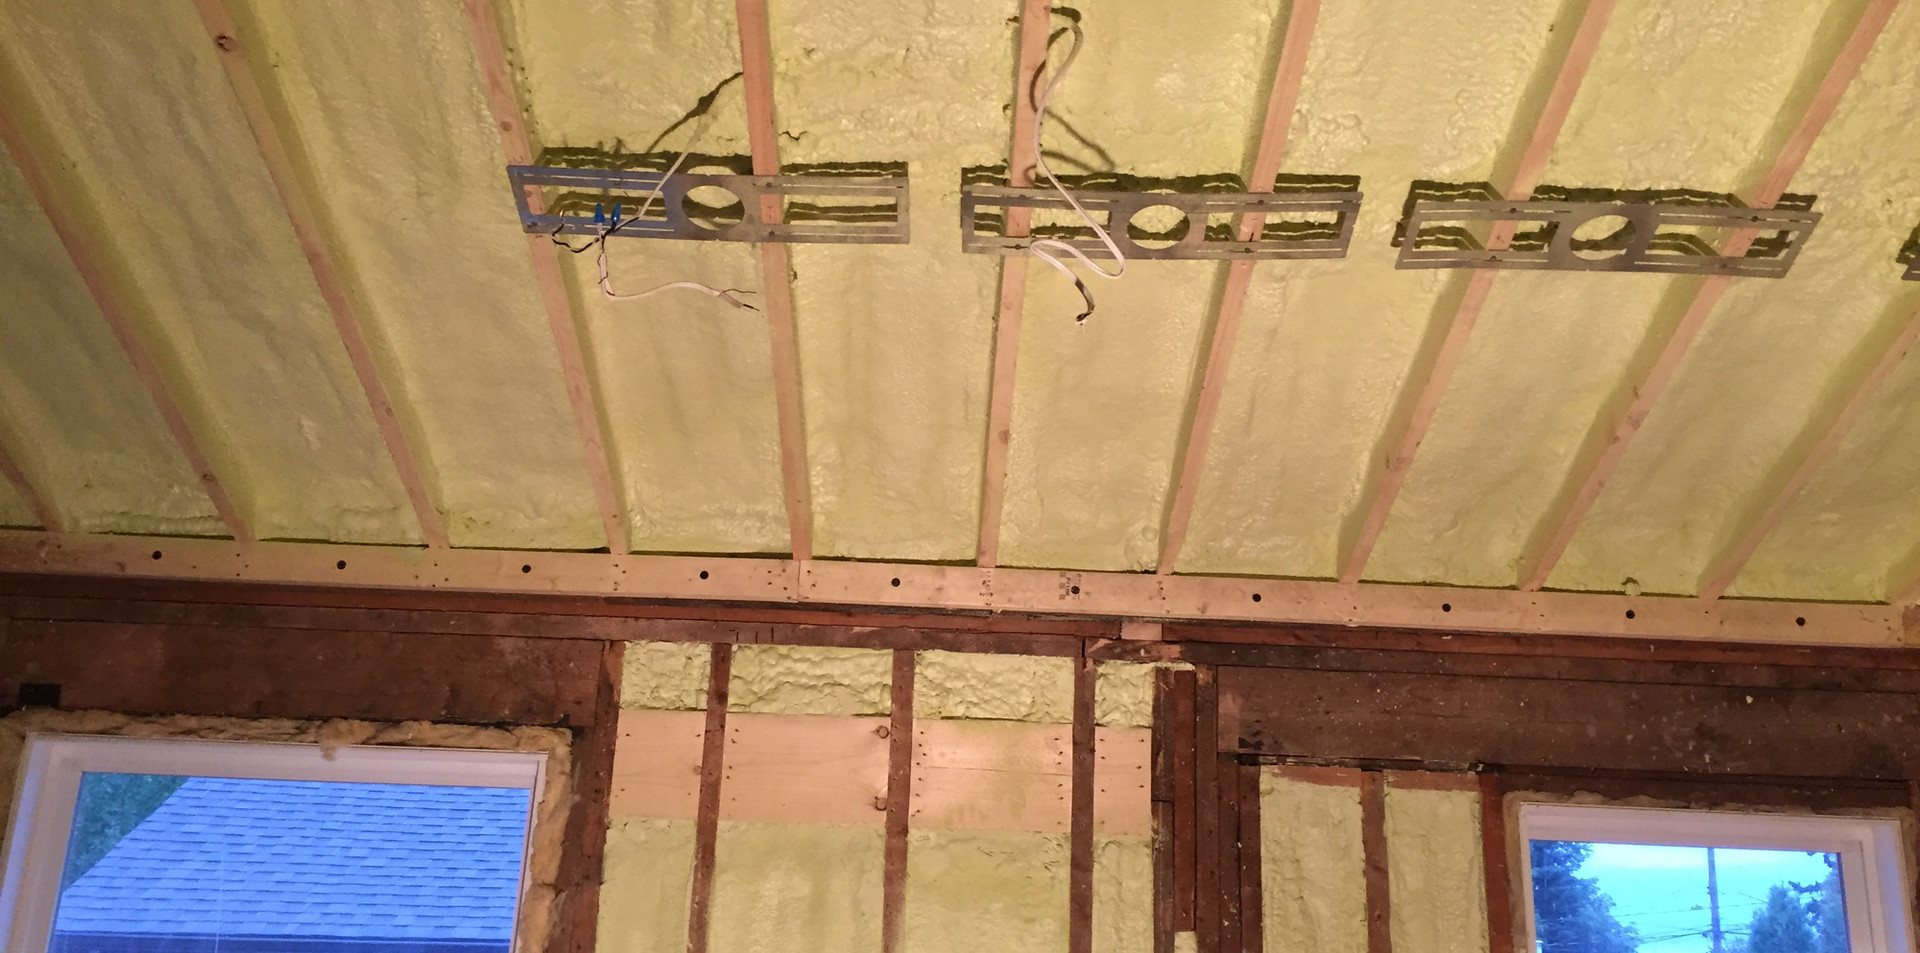 closed cell foam between rafters @ R-40 and walls @ r-20